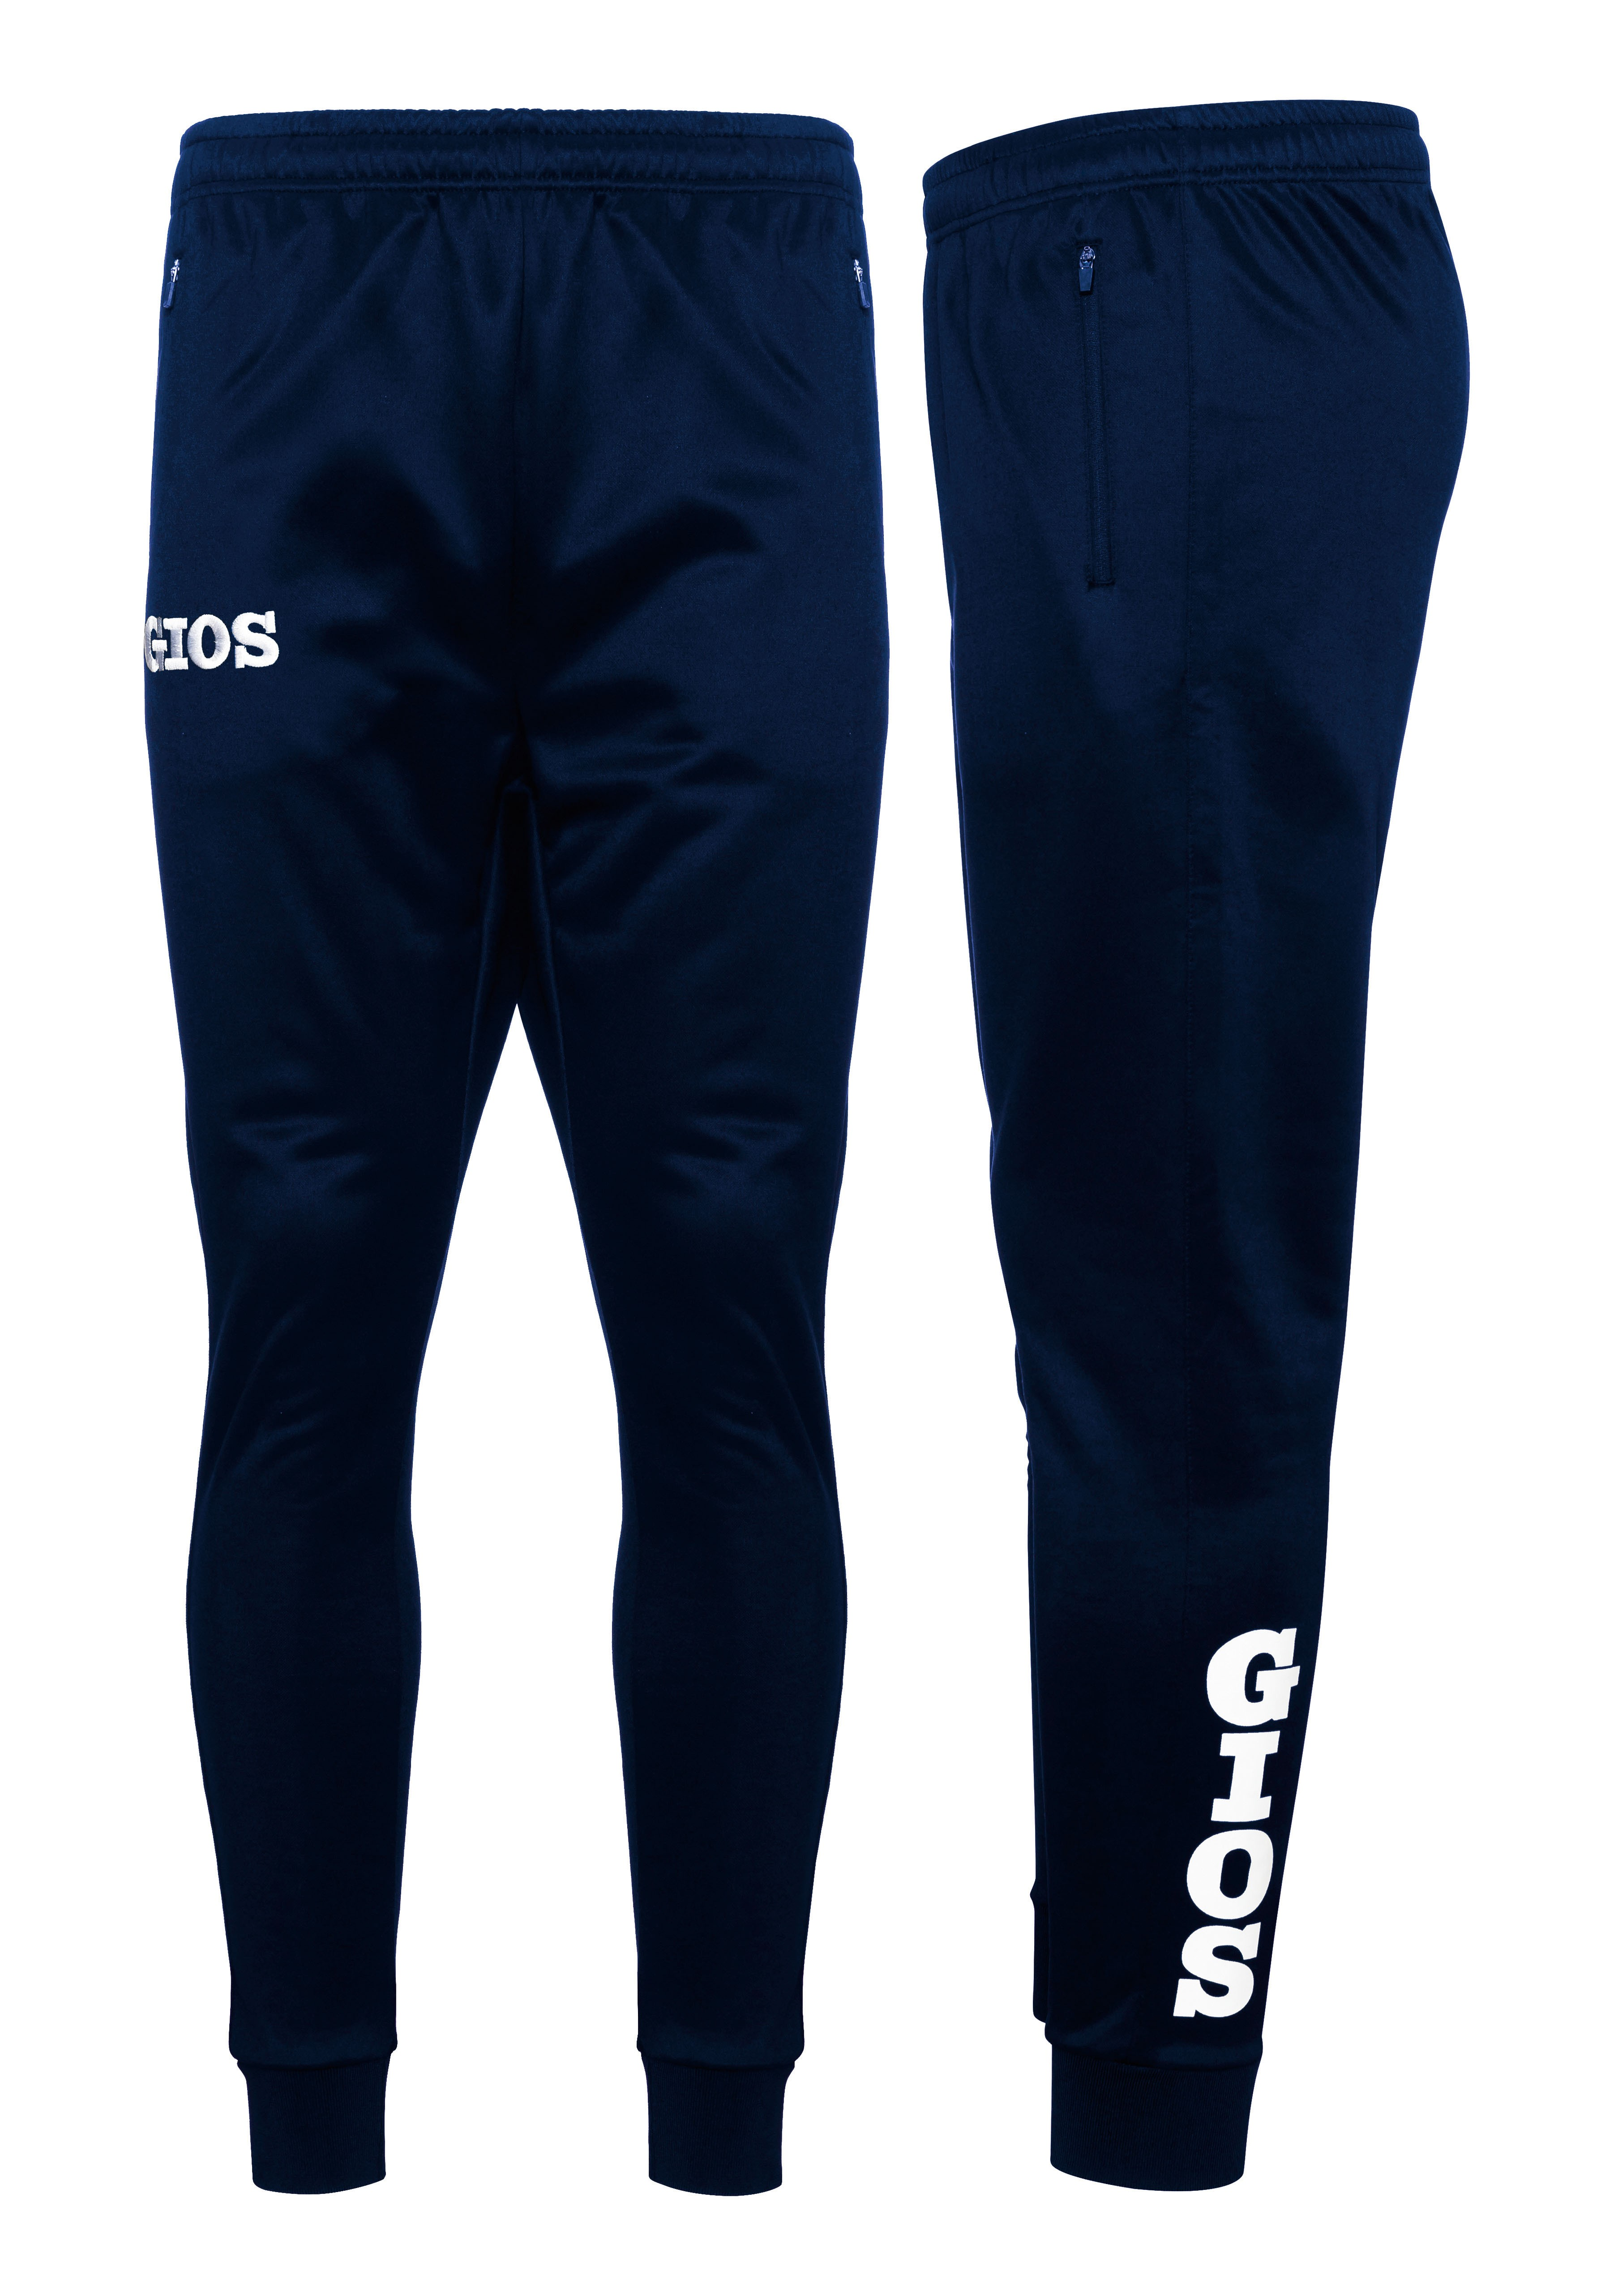 AIRONE TRACKSUIT PANT / CHAQUETA CHÁNDAL AIRONE NAVY